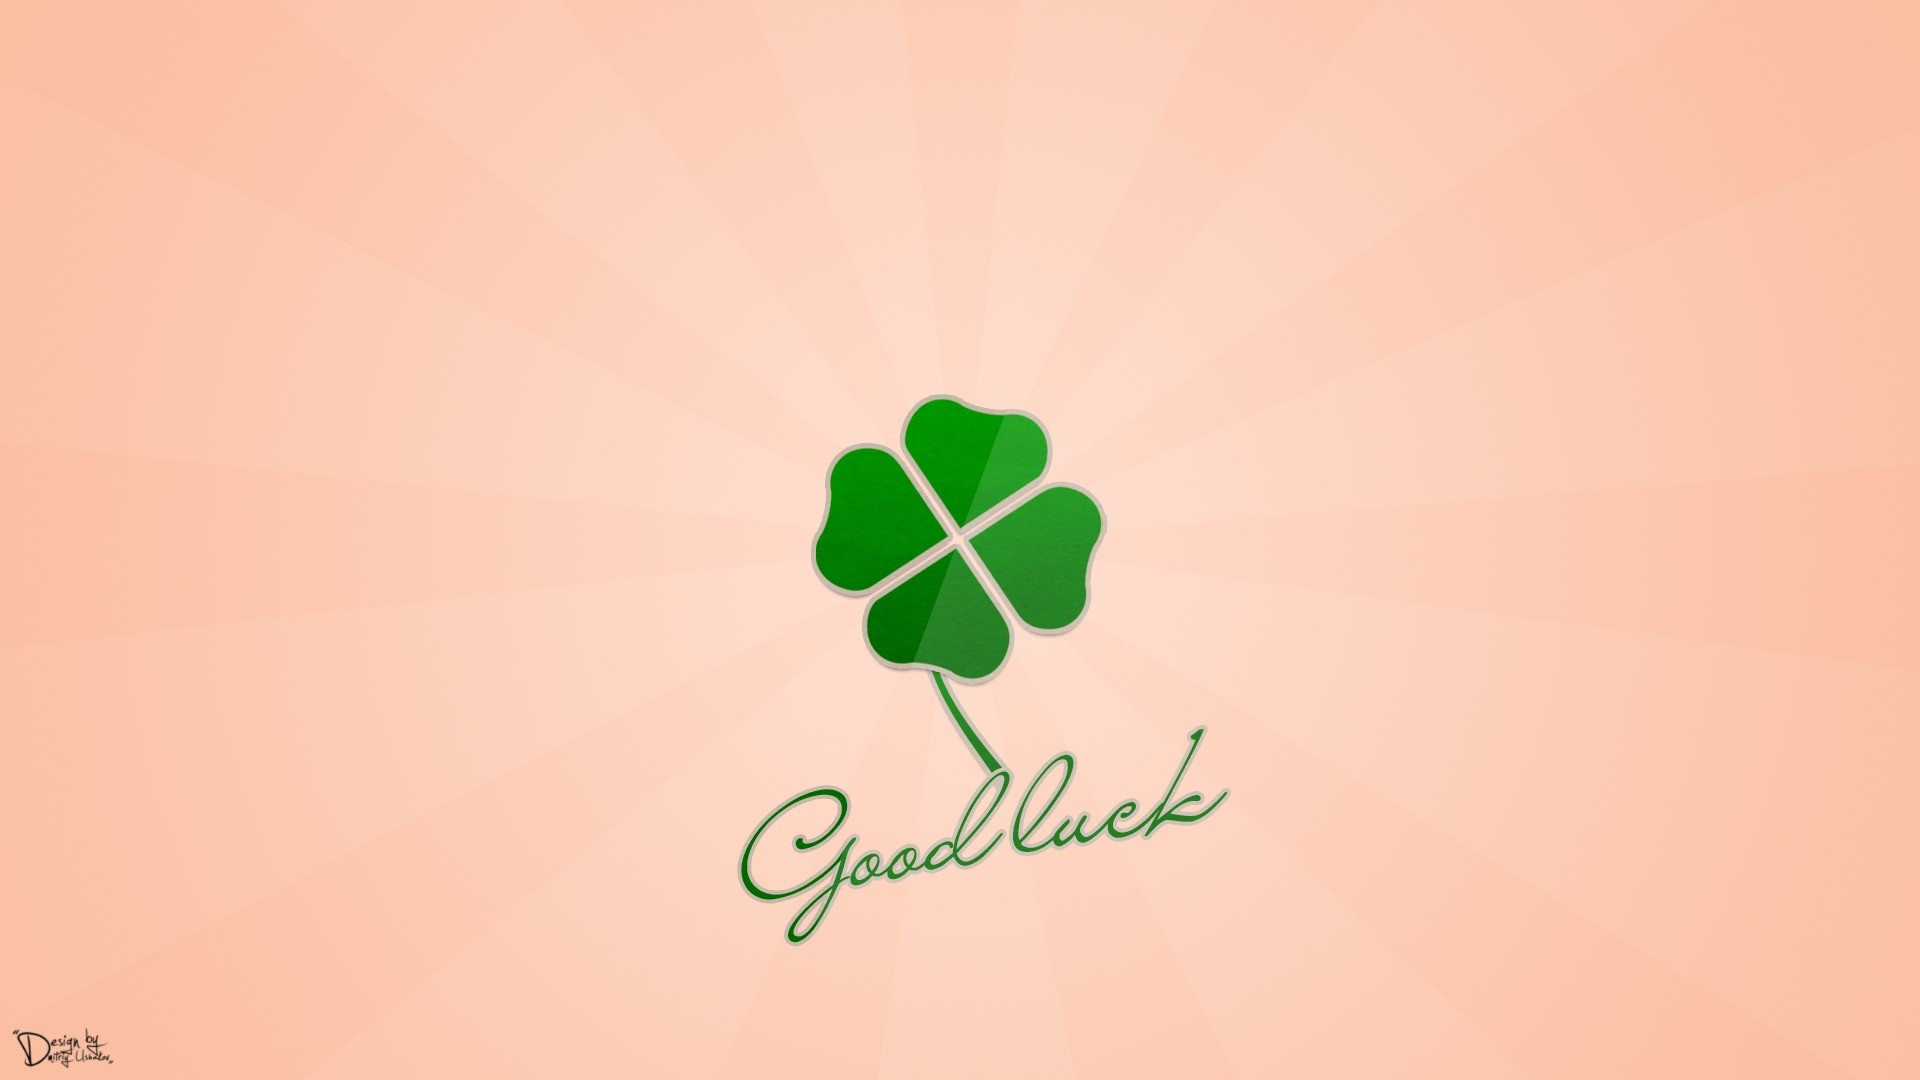 Lucky charm wallpaper 54 images - Lucky charm wallpaper ...